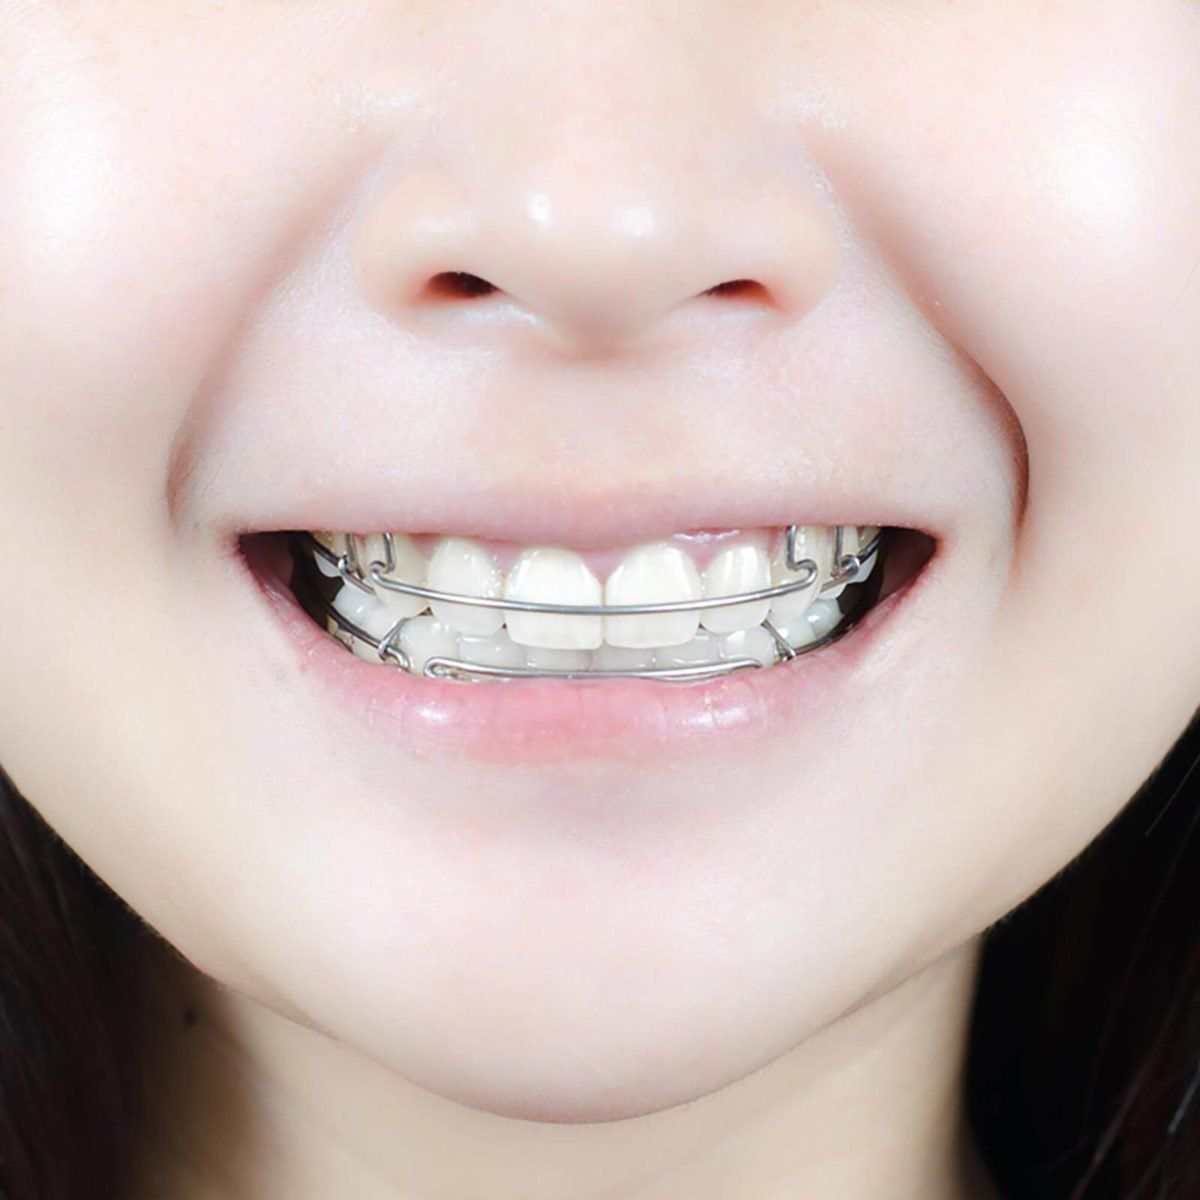 11 Things Your Orthodontist Won't Tell You | Dental retainer, Retainer  teeth, Retainers colors